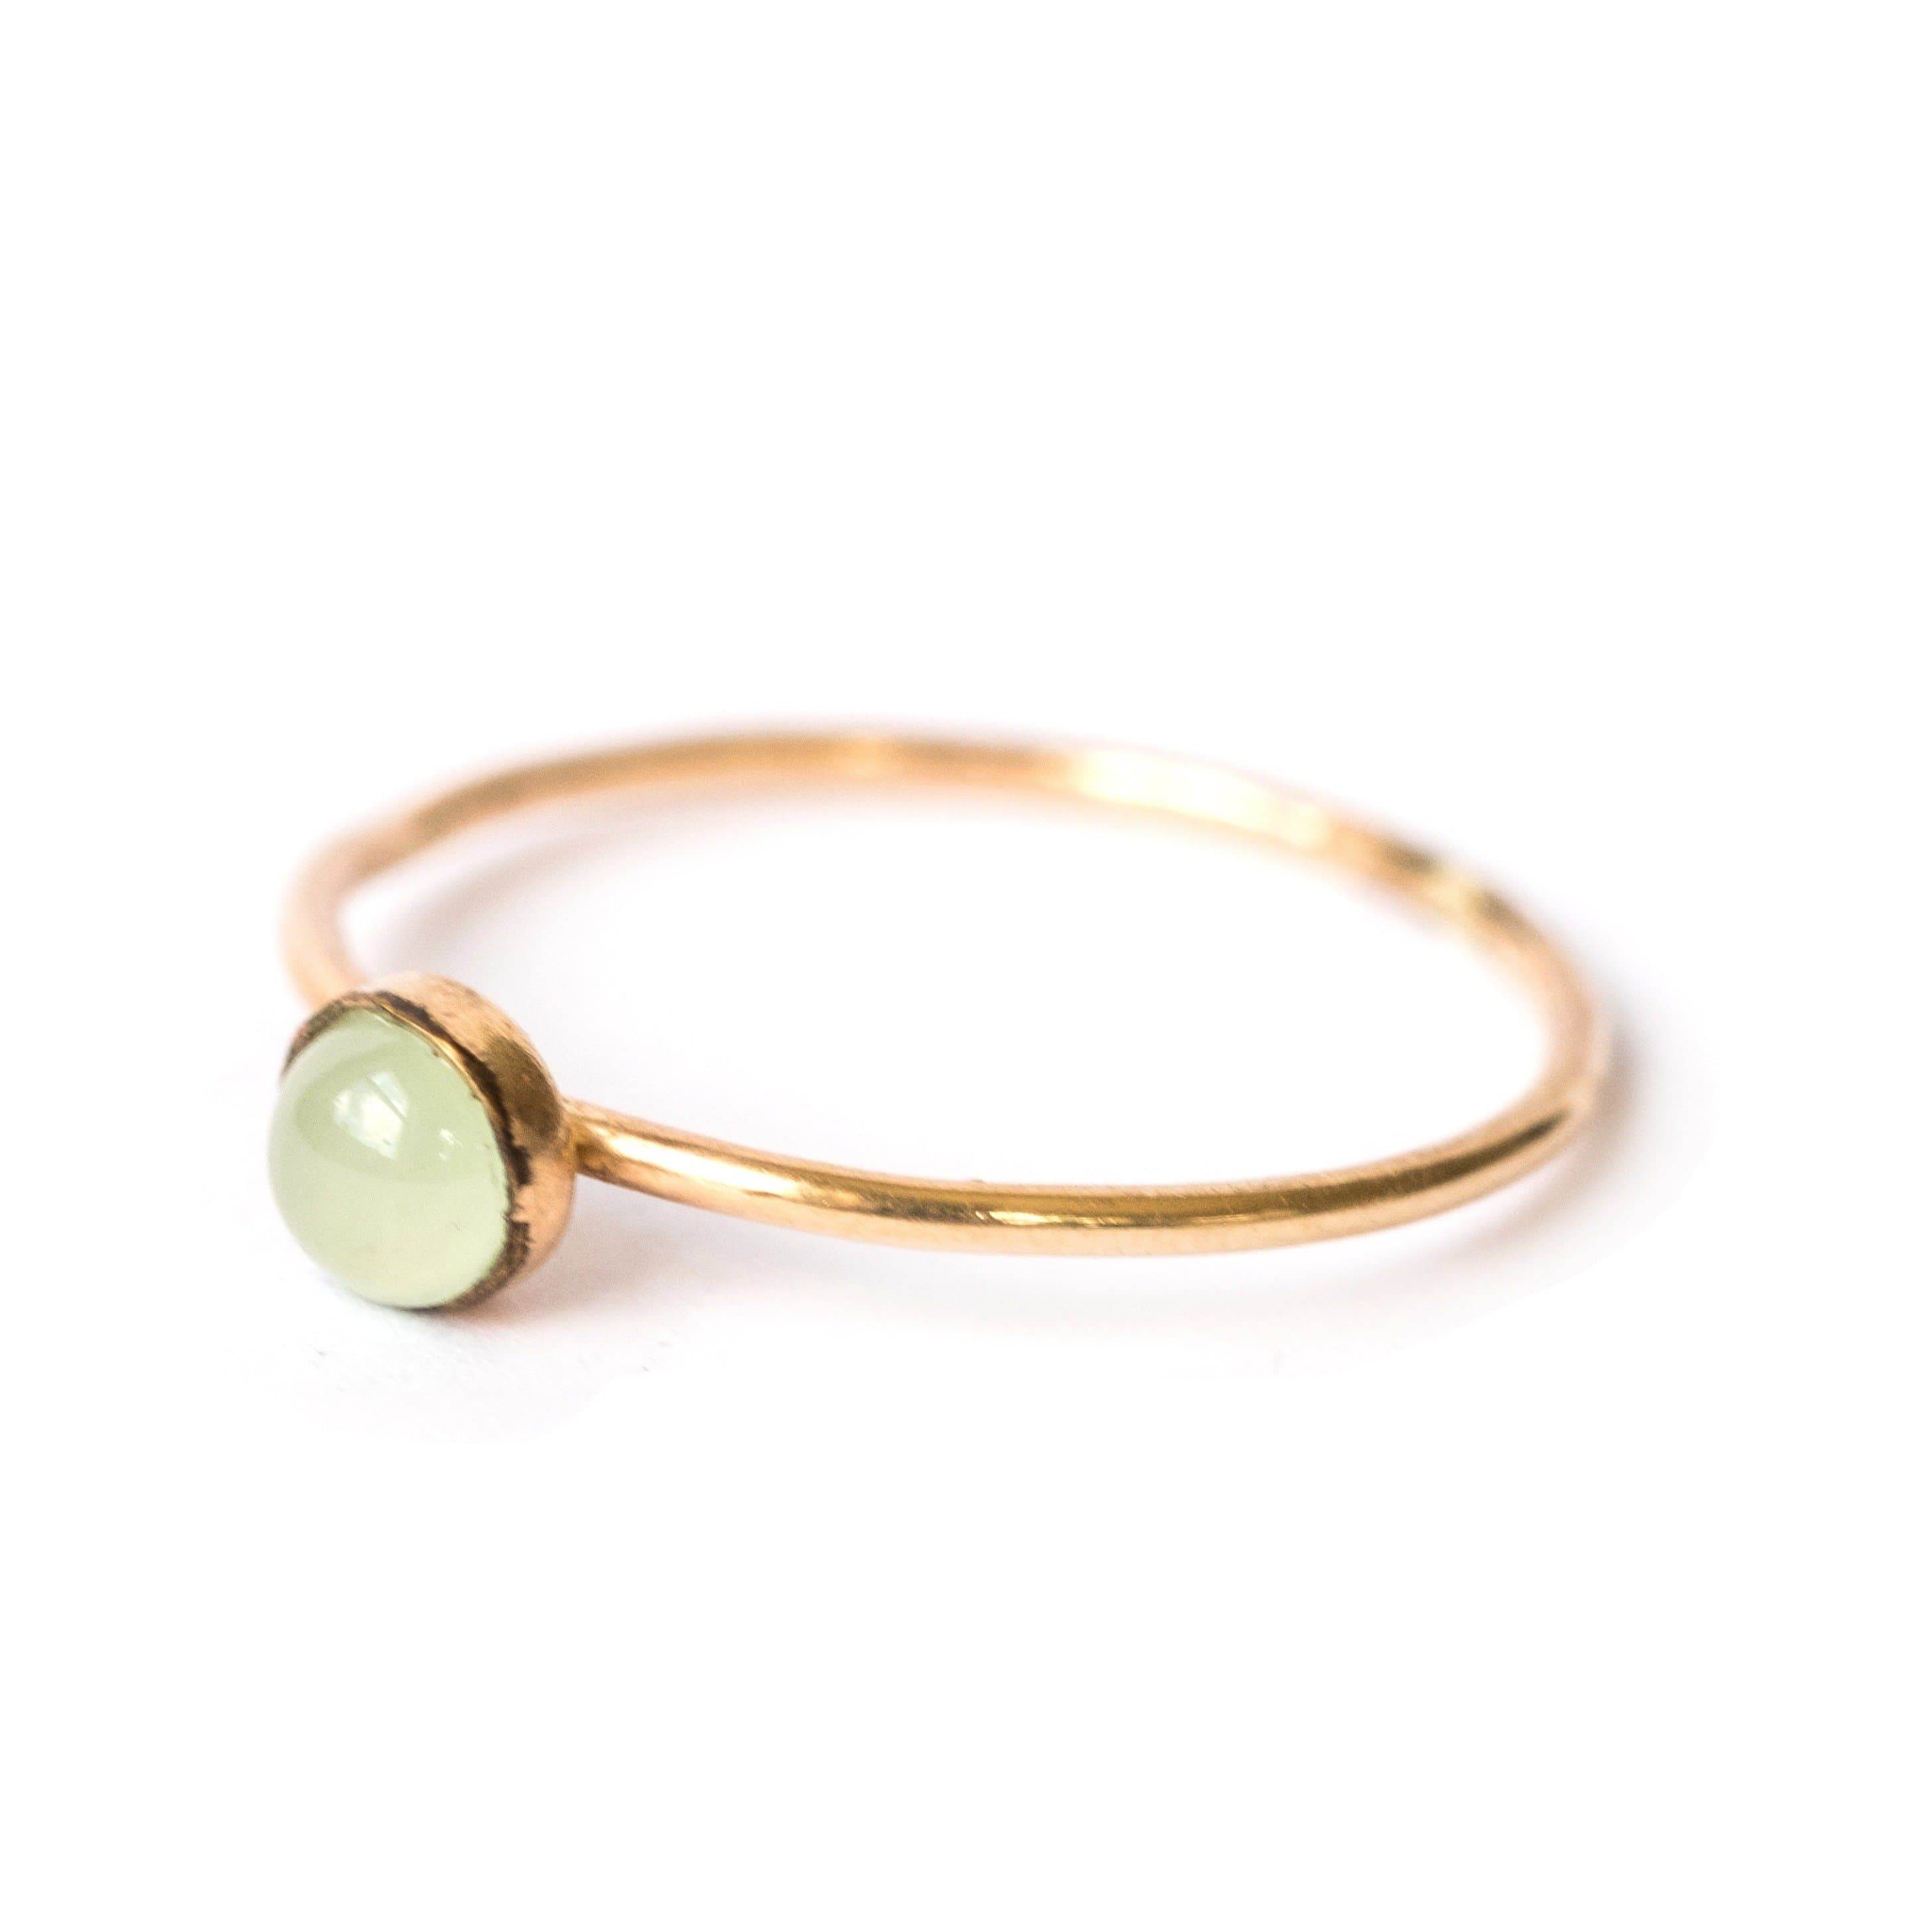 Single Stone Ring, Rings, adorn512, adorn512